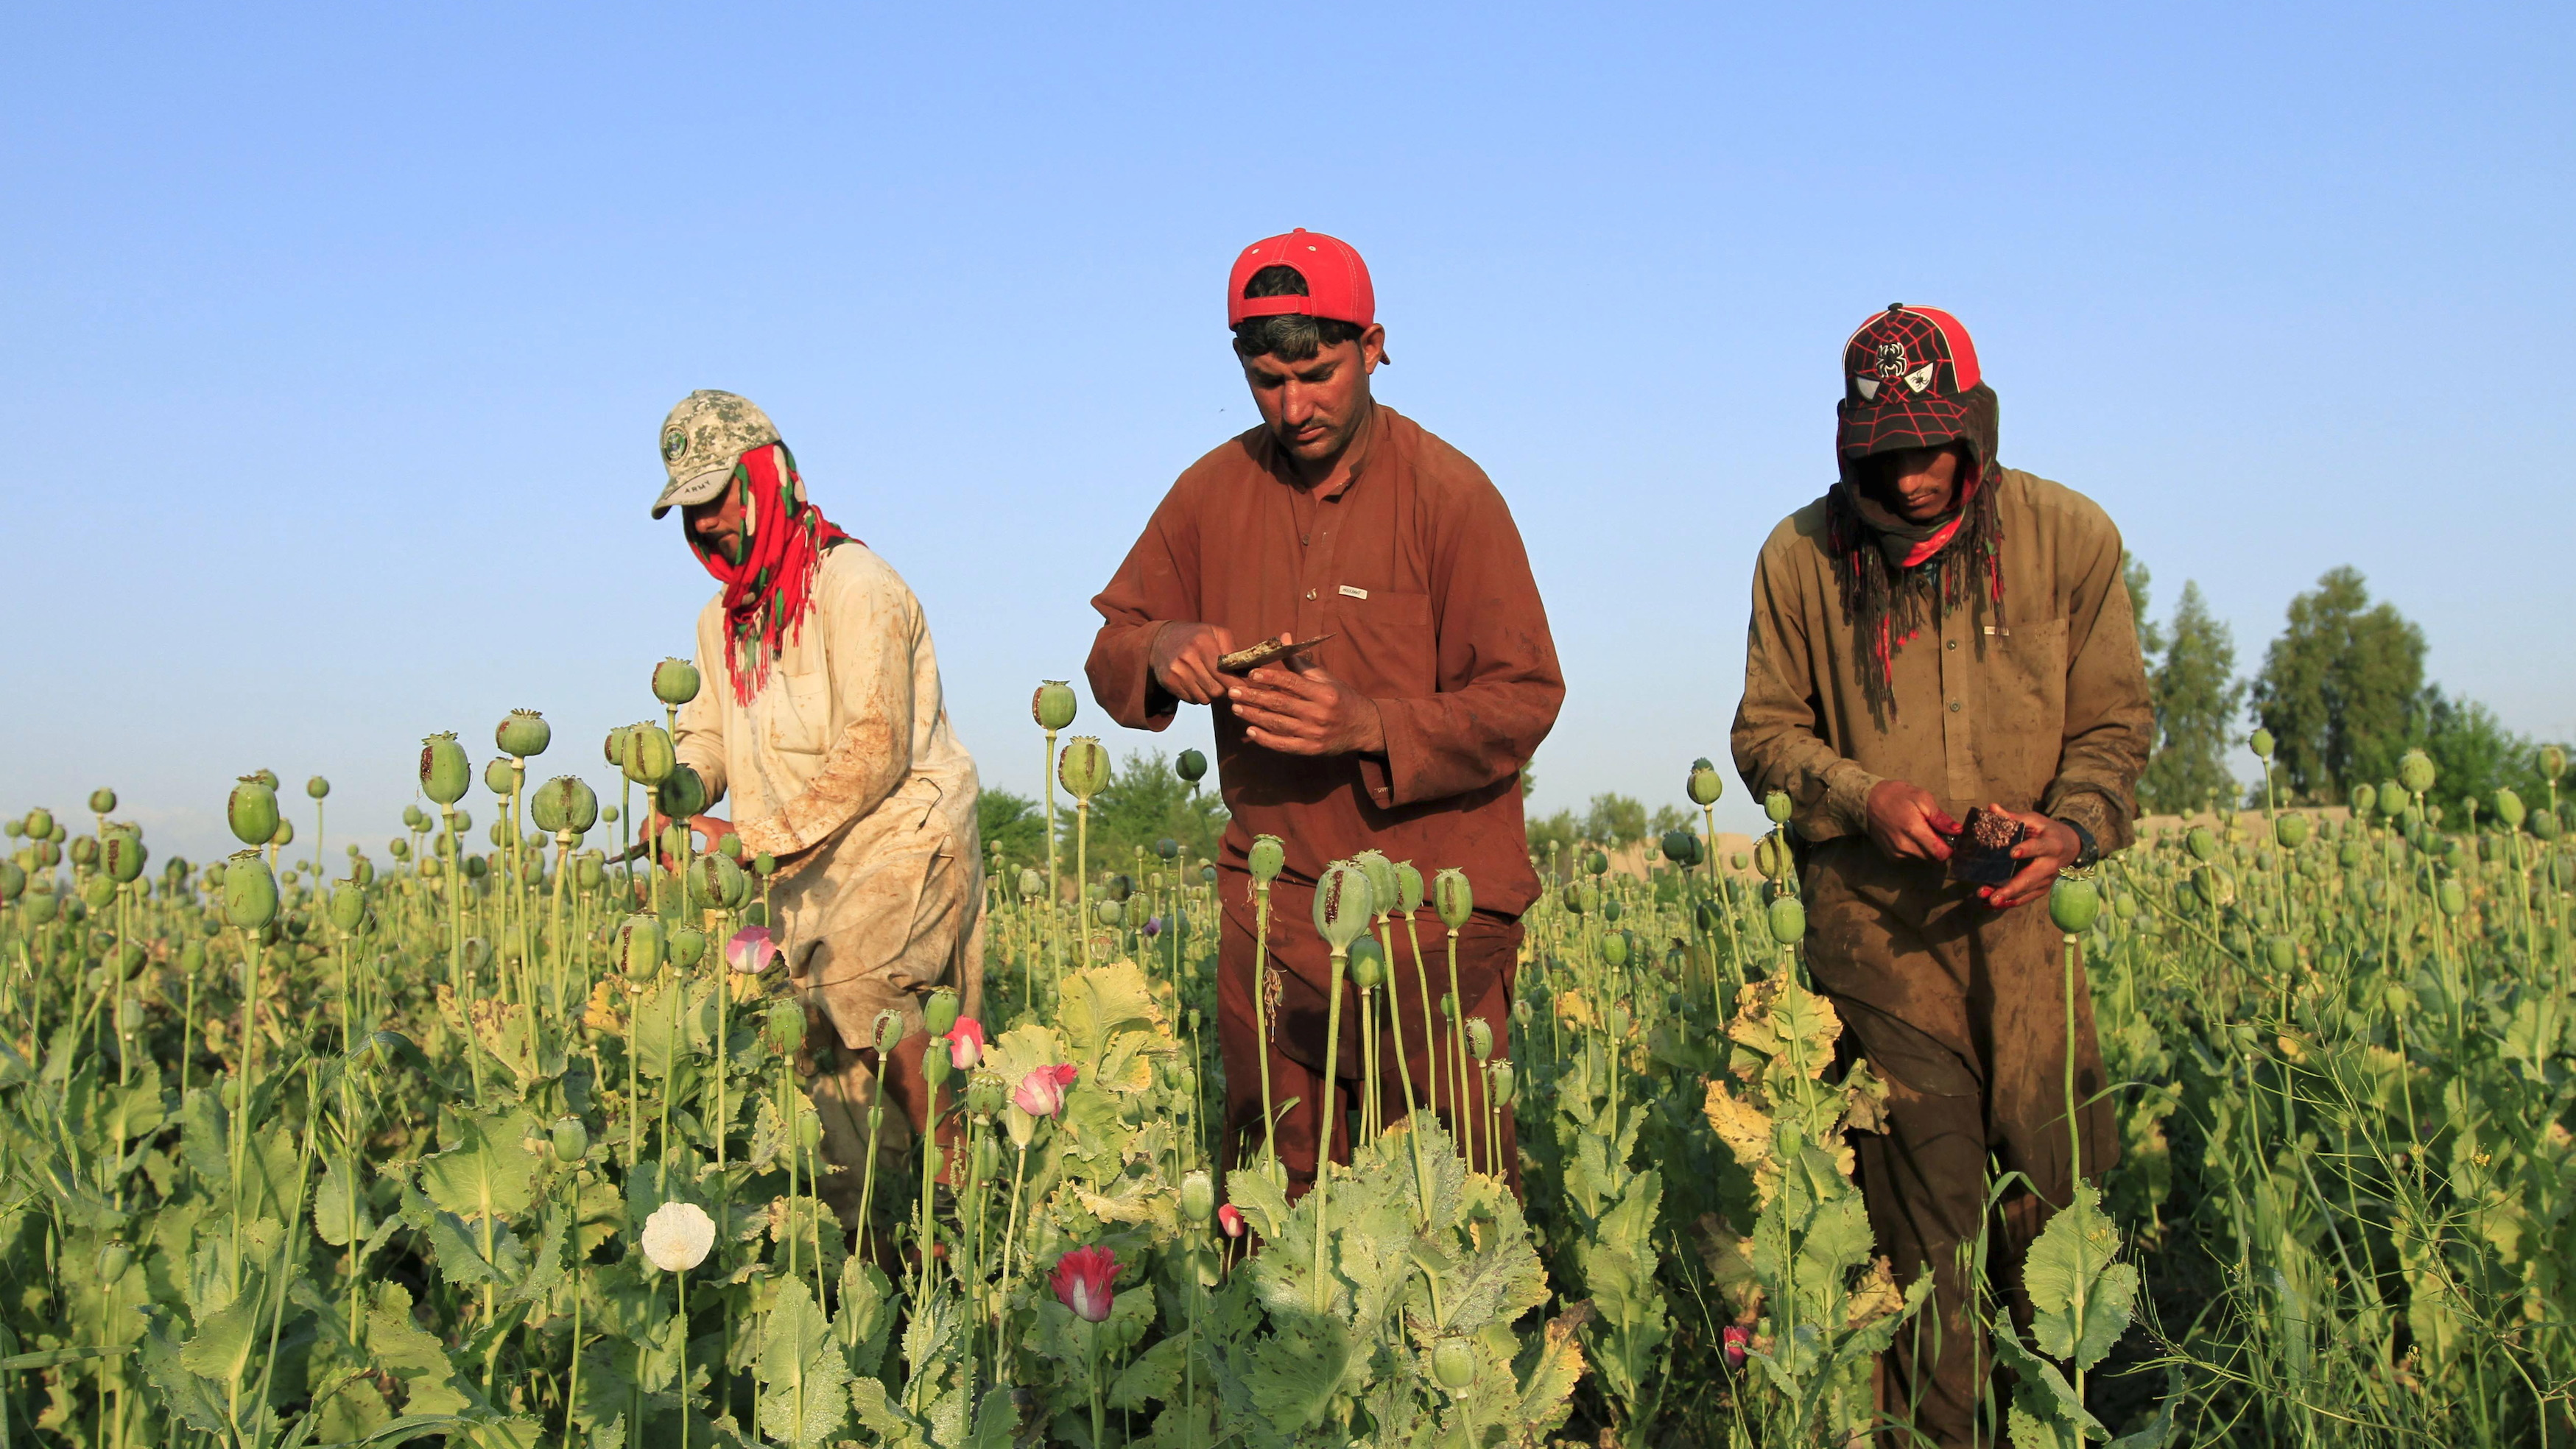 Afghan poppy farmers